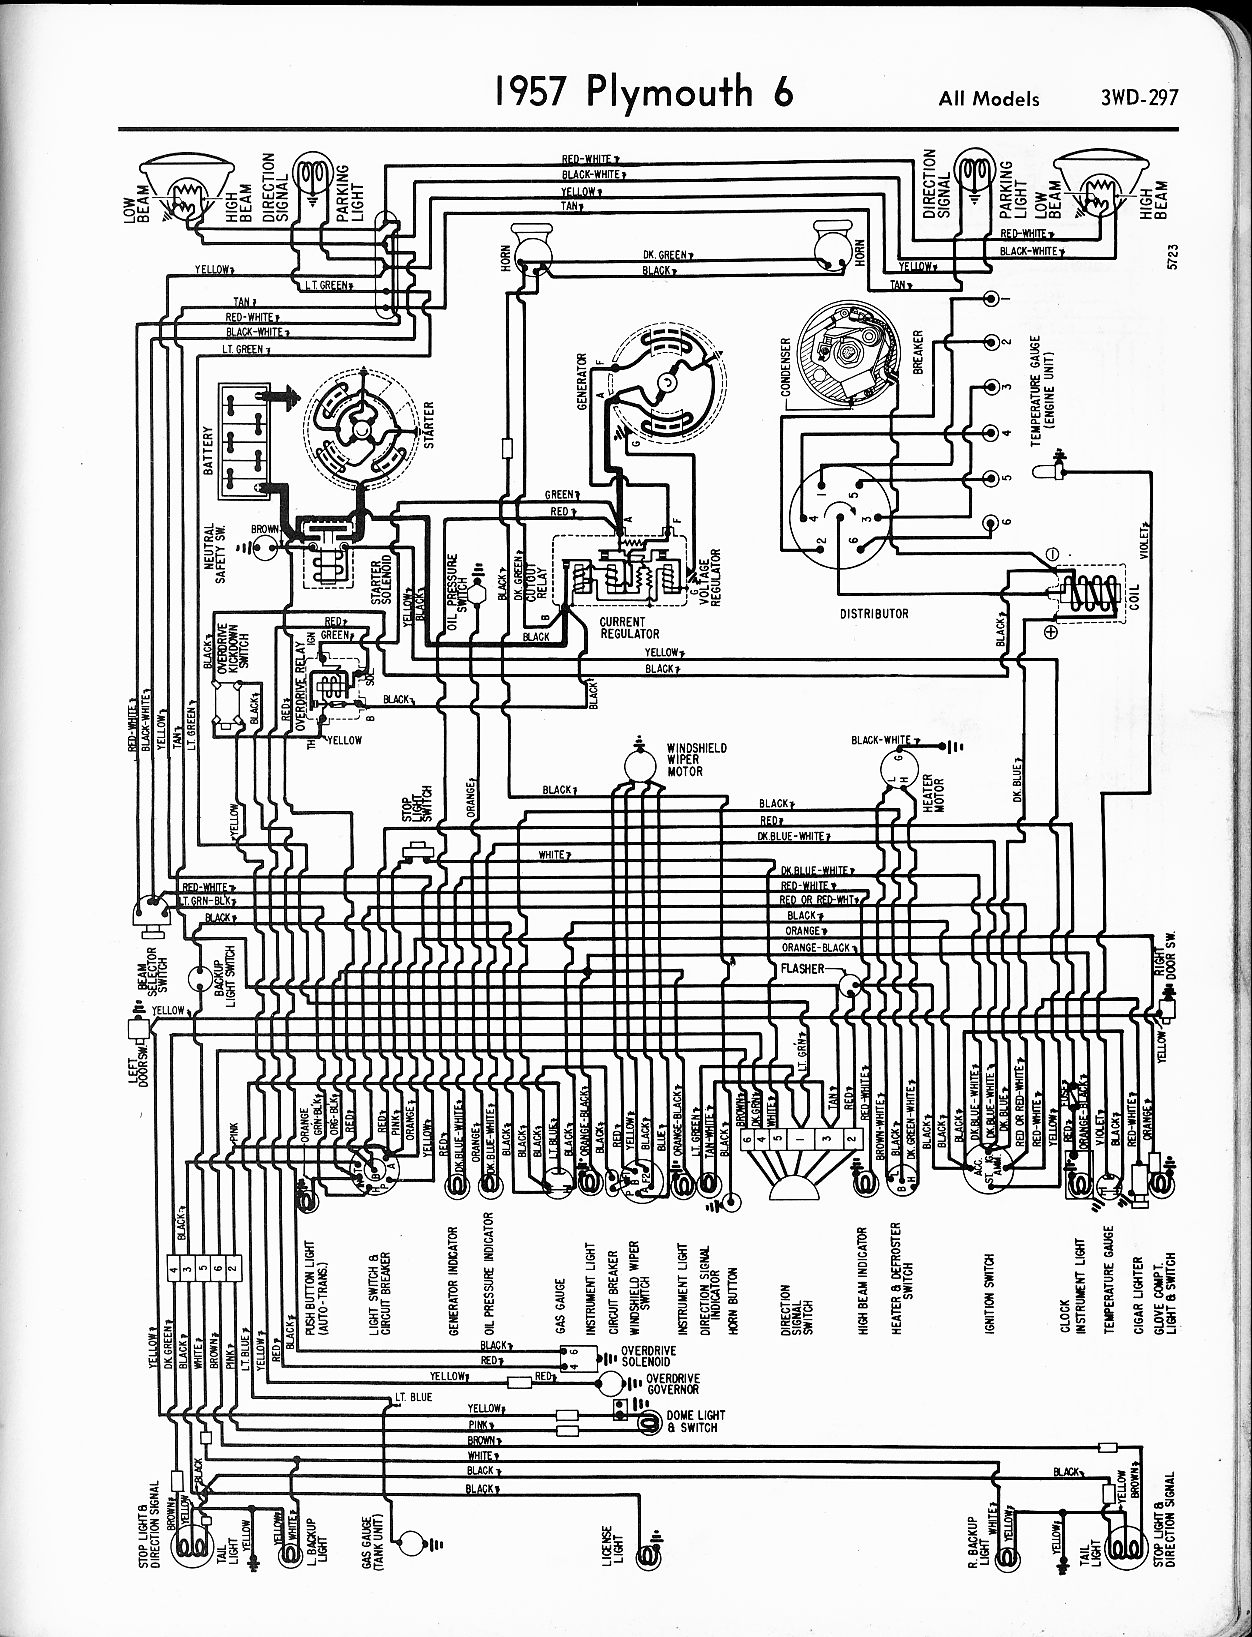 1968 plymouth wiring diagram wiring diagram 1967 plymouth gtx wiring diagram